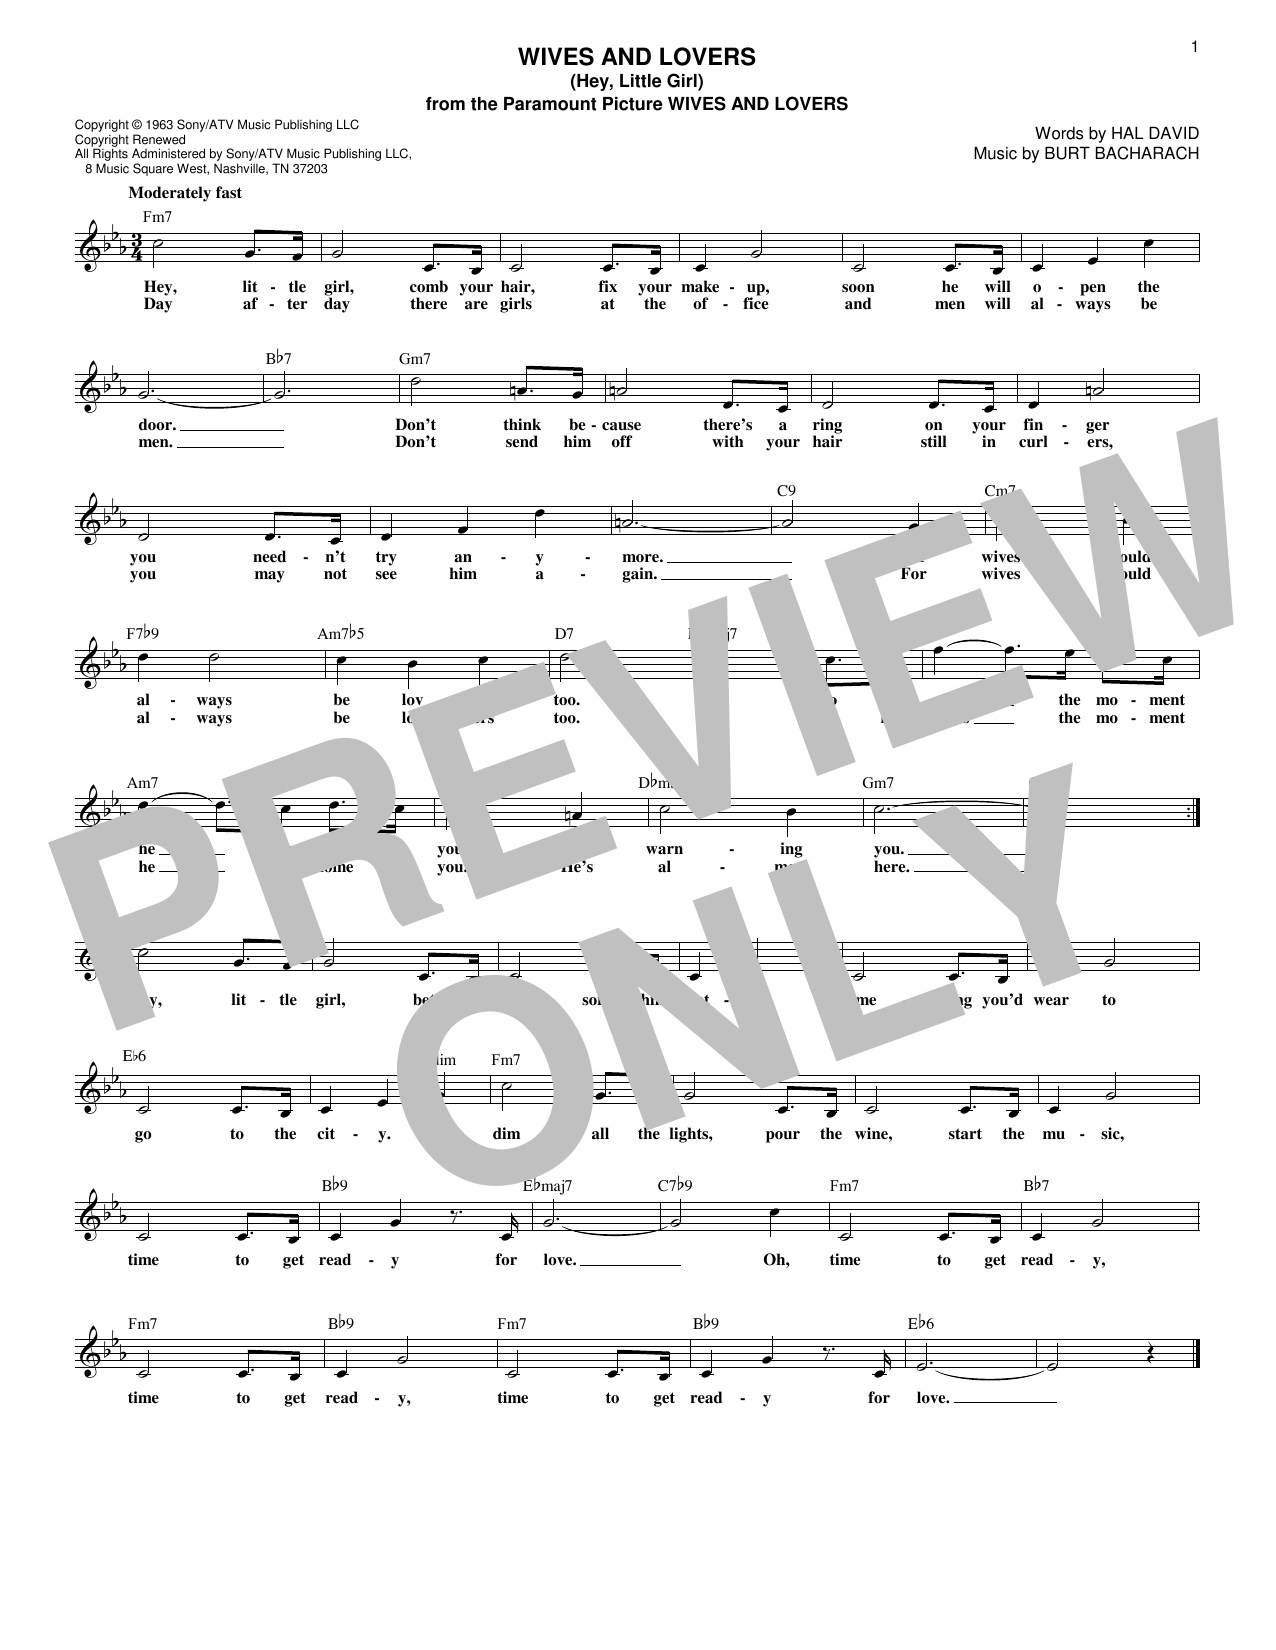 Burt Bacharach Wives And Lovers (Hey, Little Girl) sheet music notes and chords. Download Printable PDF.